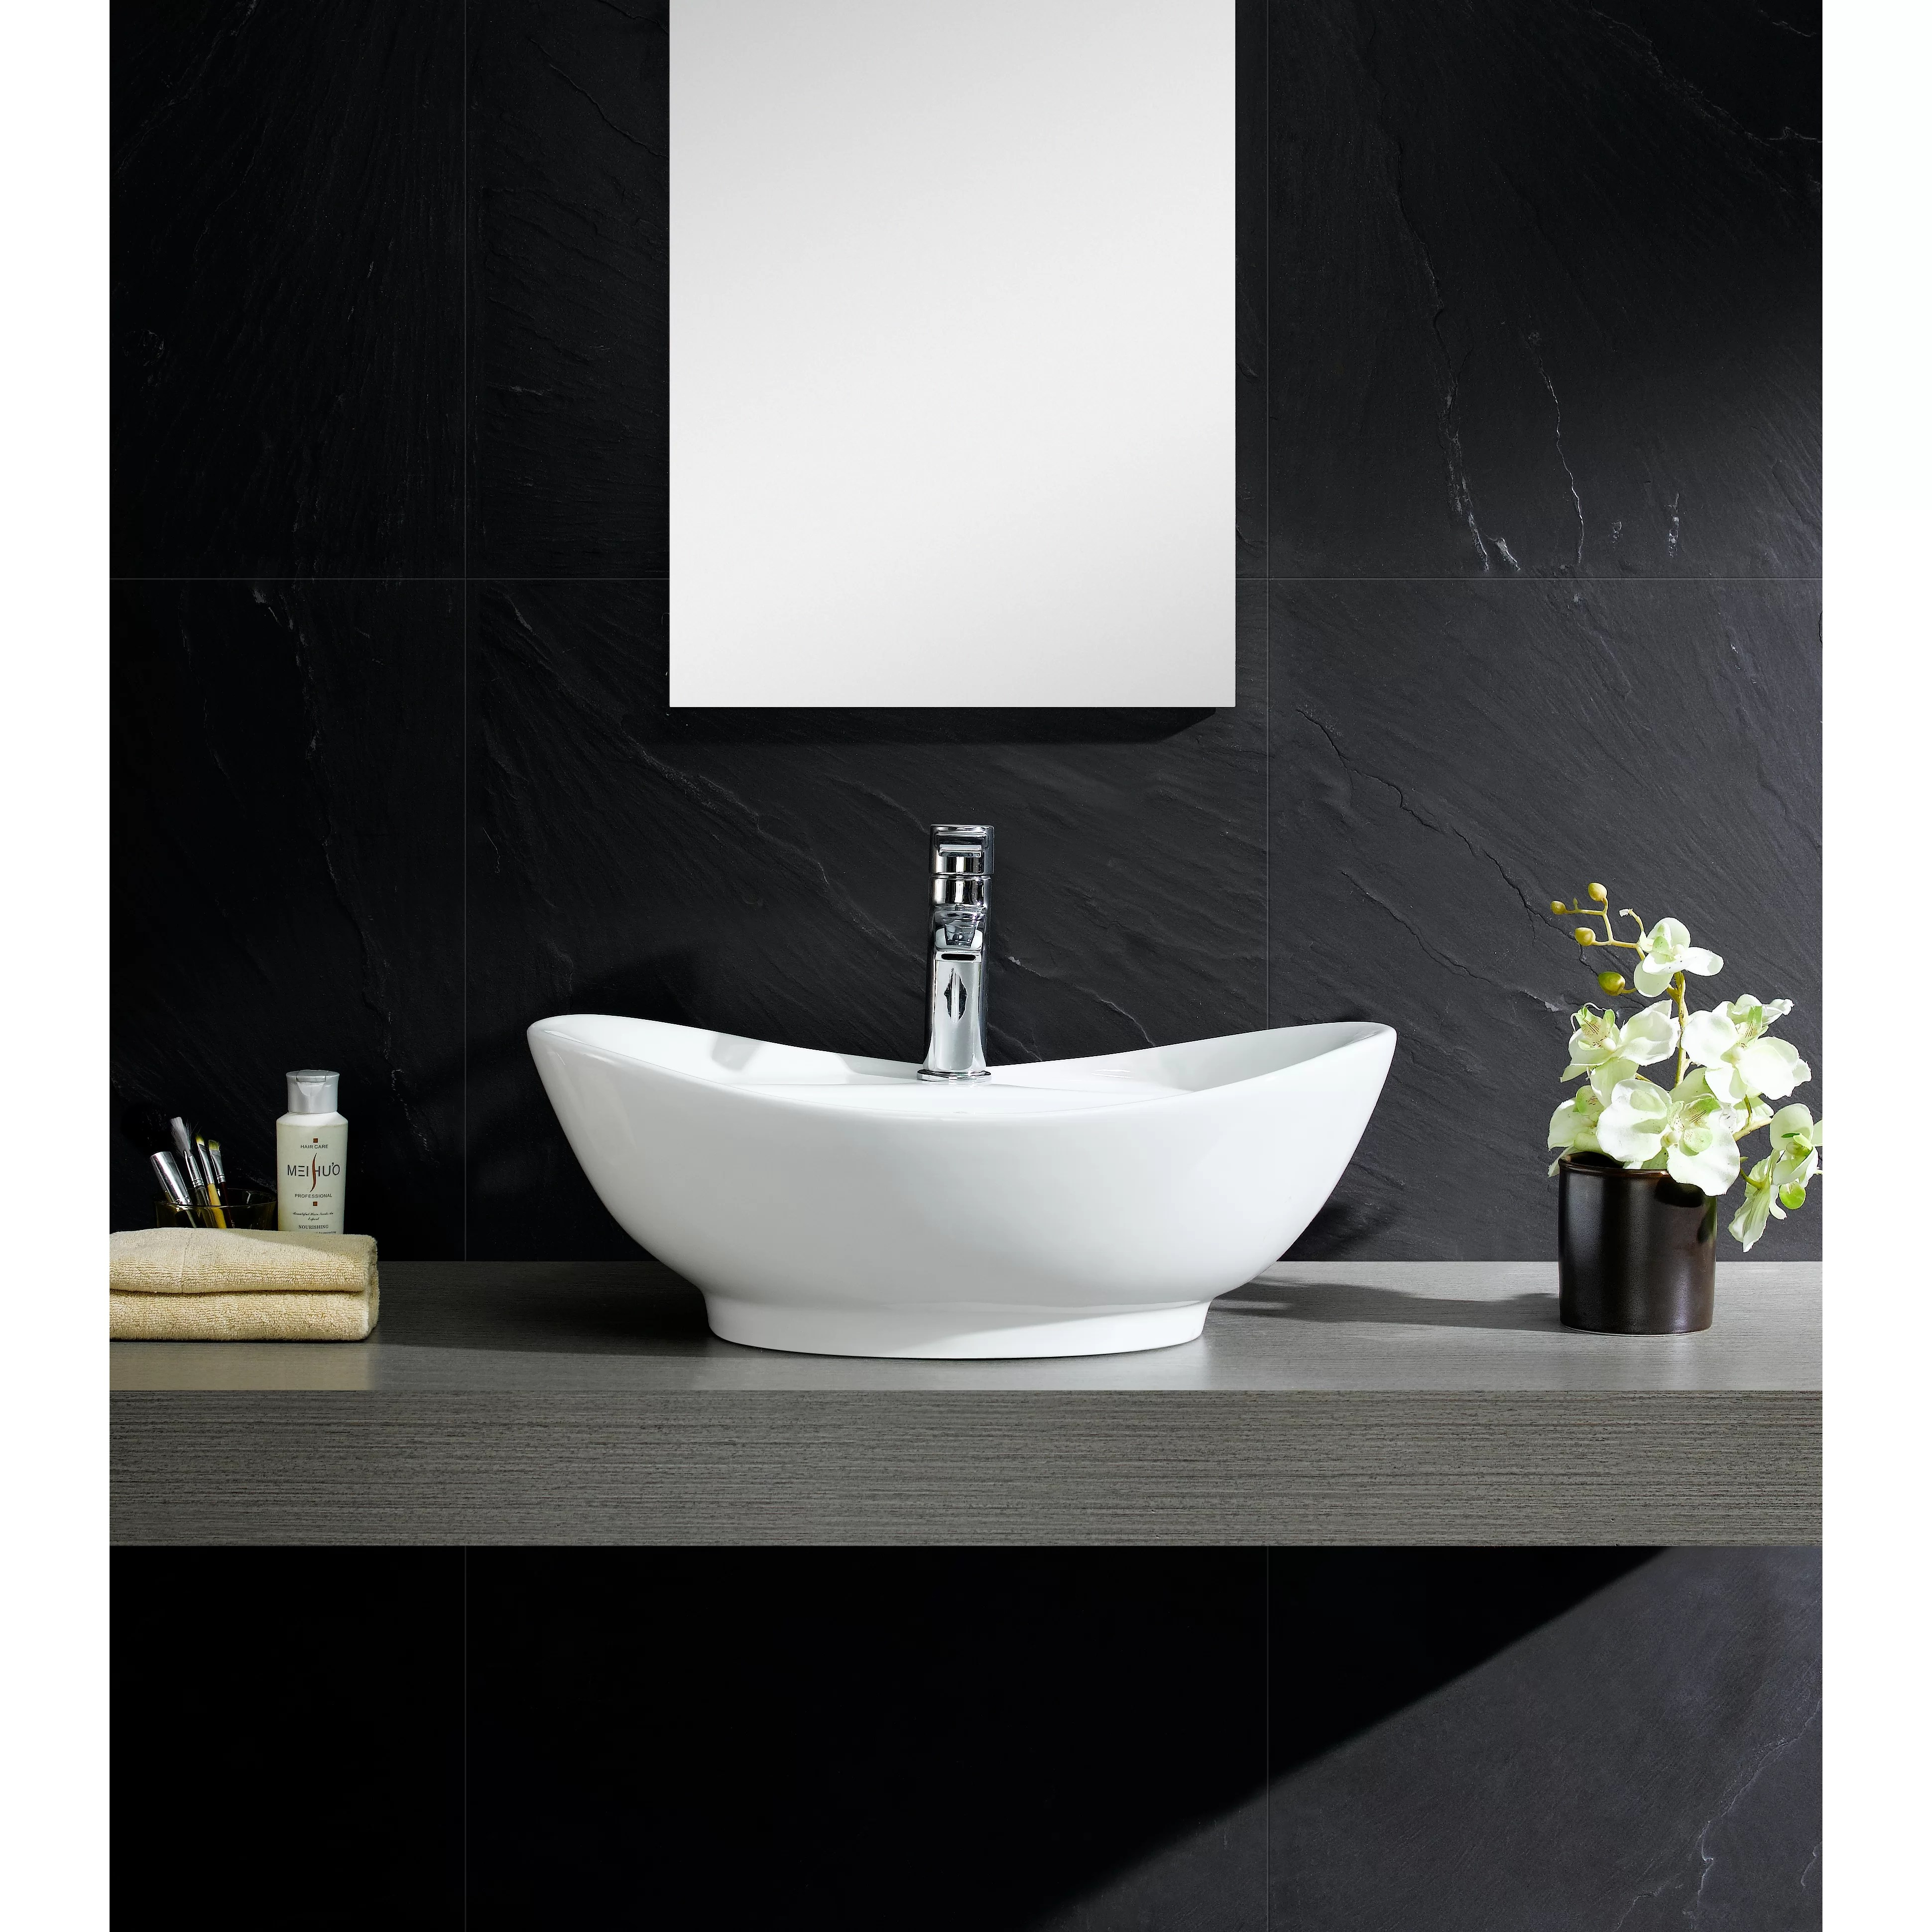 Fine Fixtures Modern Vitreous Large Oval Vessel Sink Vessel Bathroom Sink with Overflow